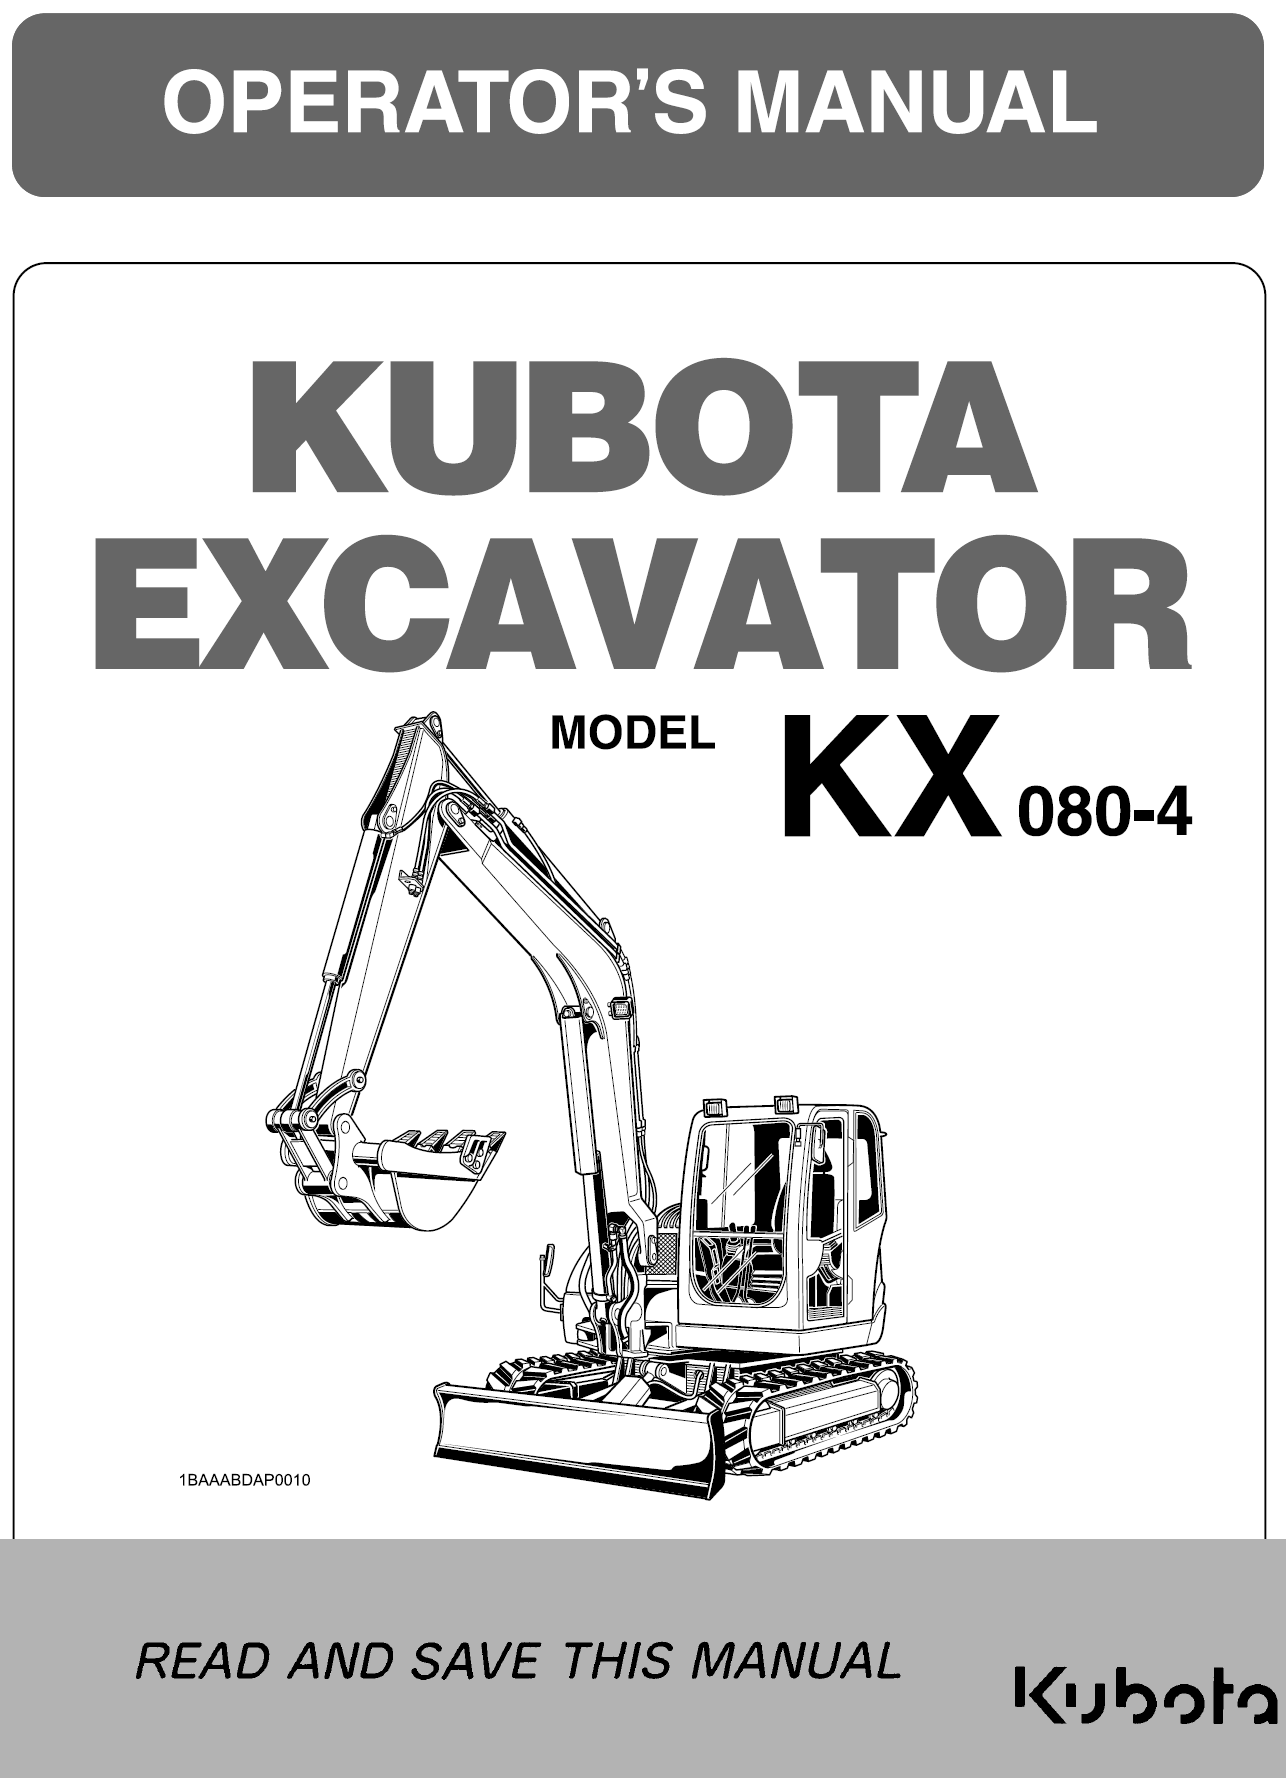 Kubota KX080-4 Operators Manual | Garton Tractor | California | Kubota &  New Holland Tractors Equipment